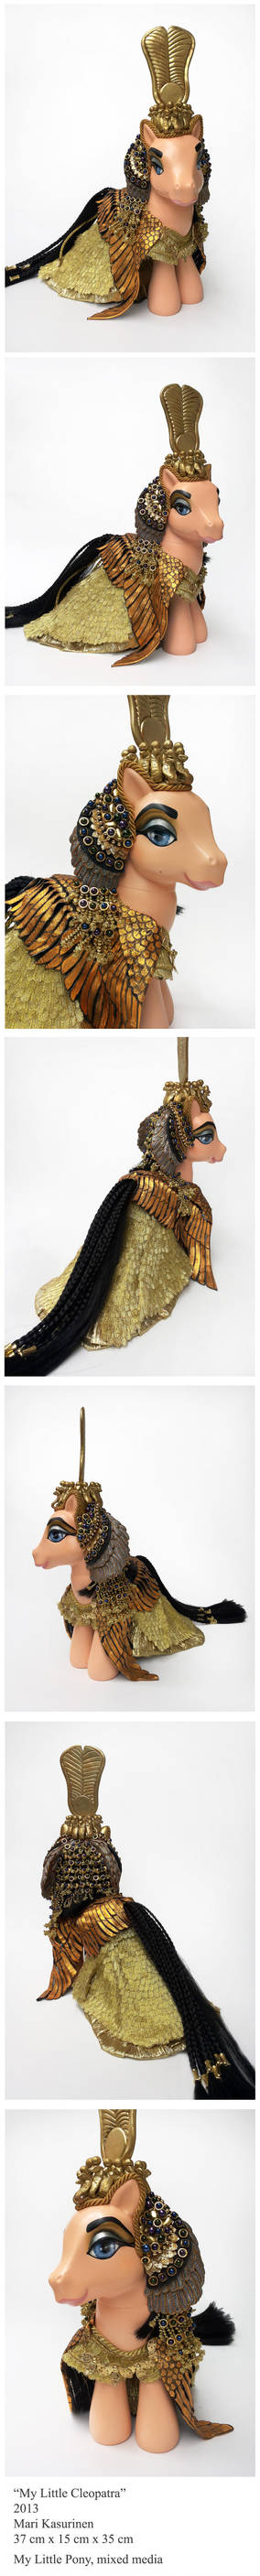 My Little Cleopatra by Spippo